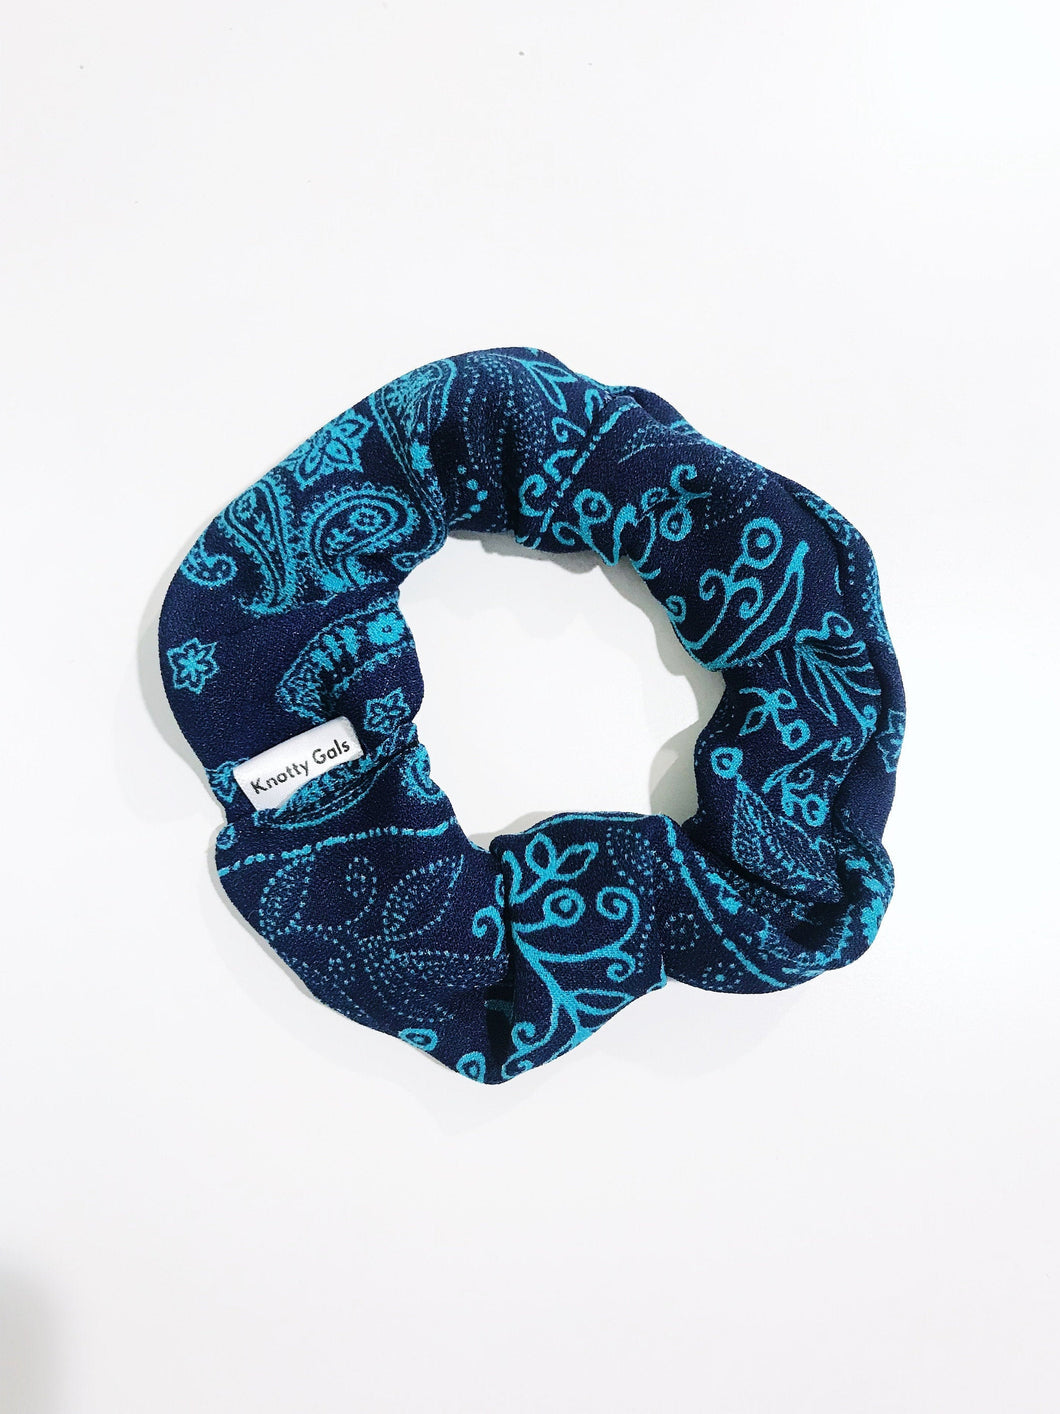 Knotty Gal Scrunchy - June